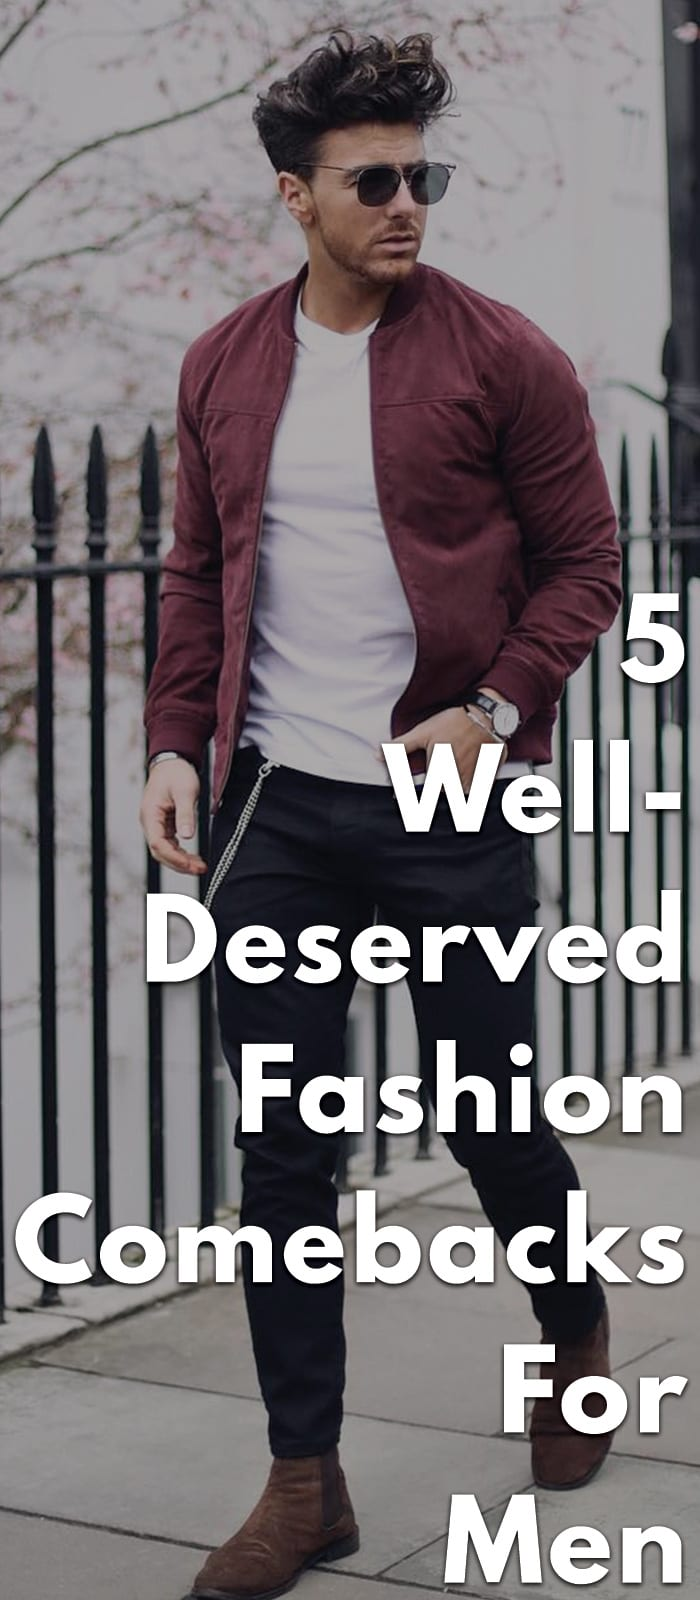 5-Well-Deserved-Fashion-Comebacks-For-Men...